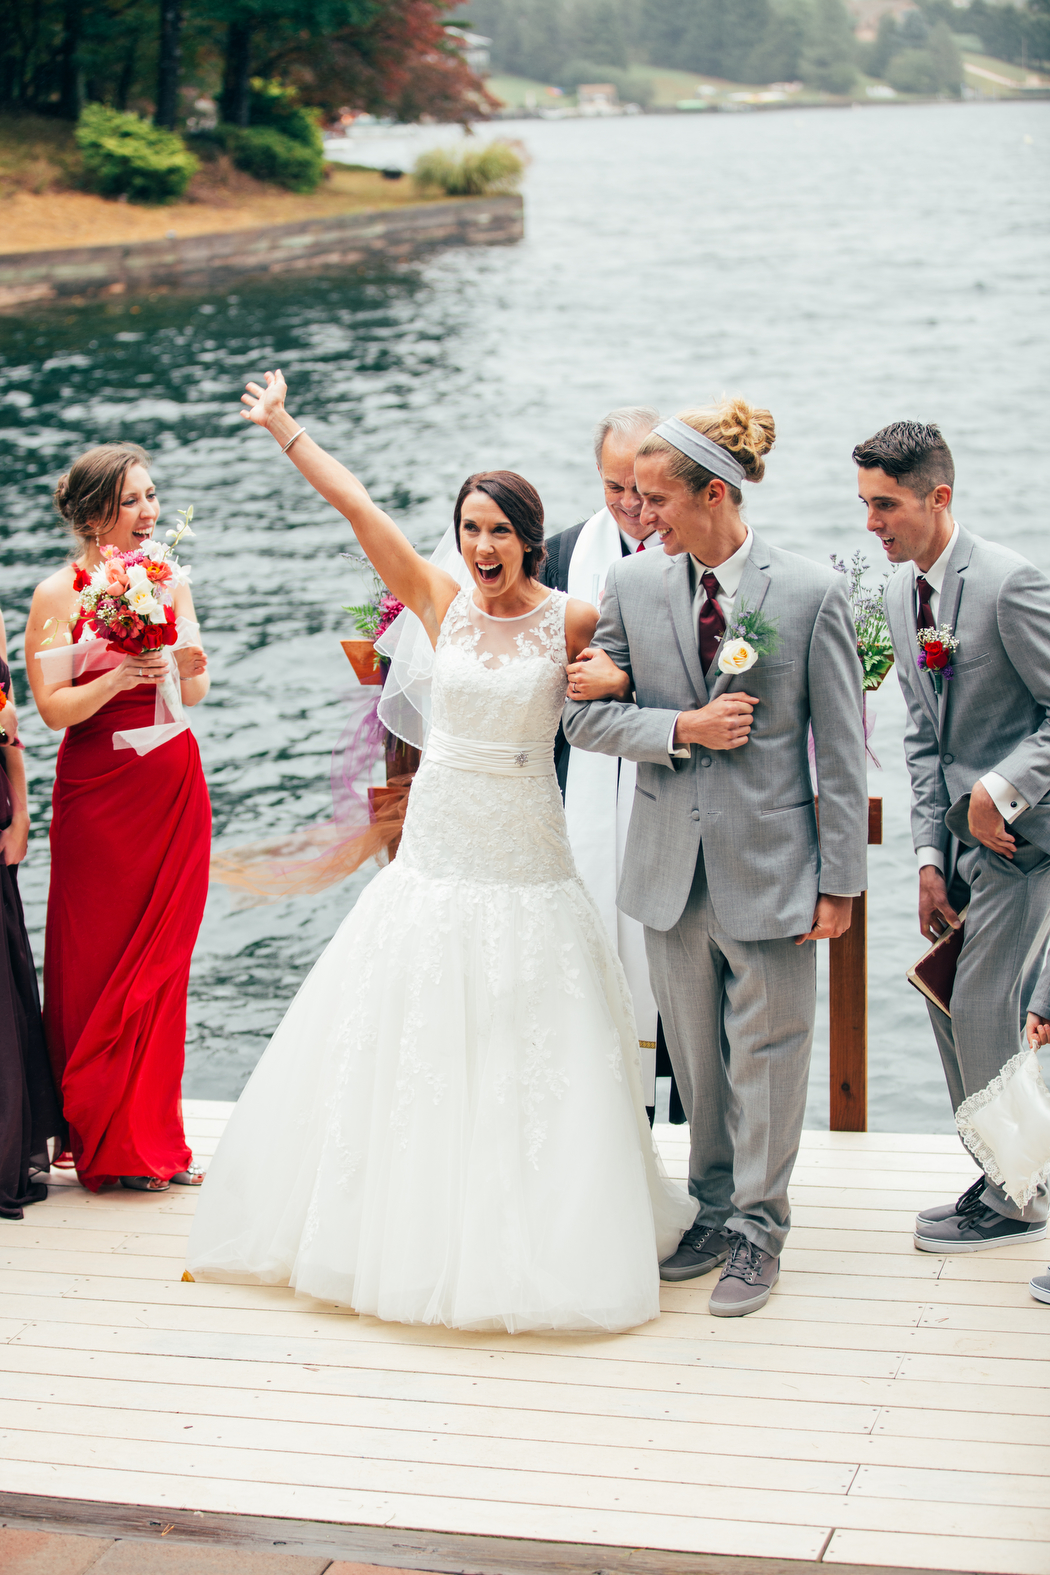 CARA-KORY-LAKESIDE-WEDDING-PORTRAIT-0002